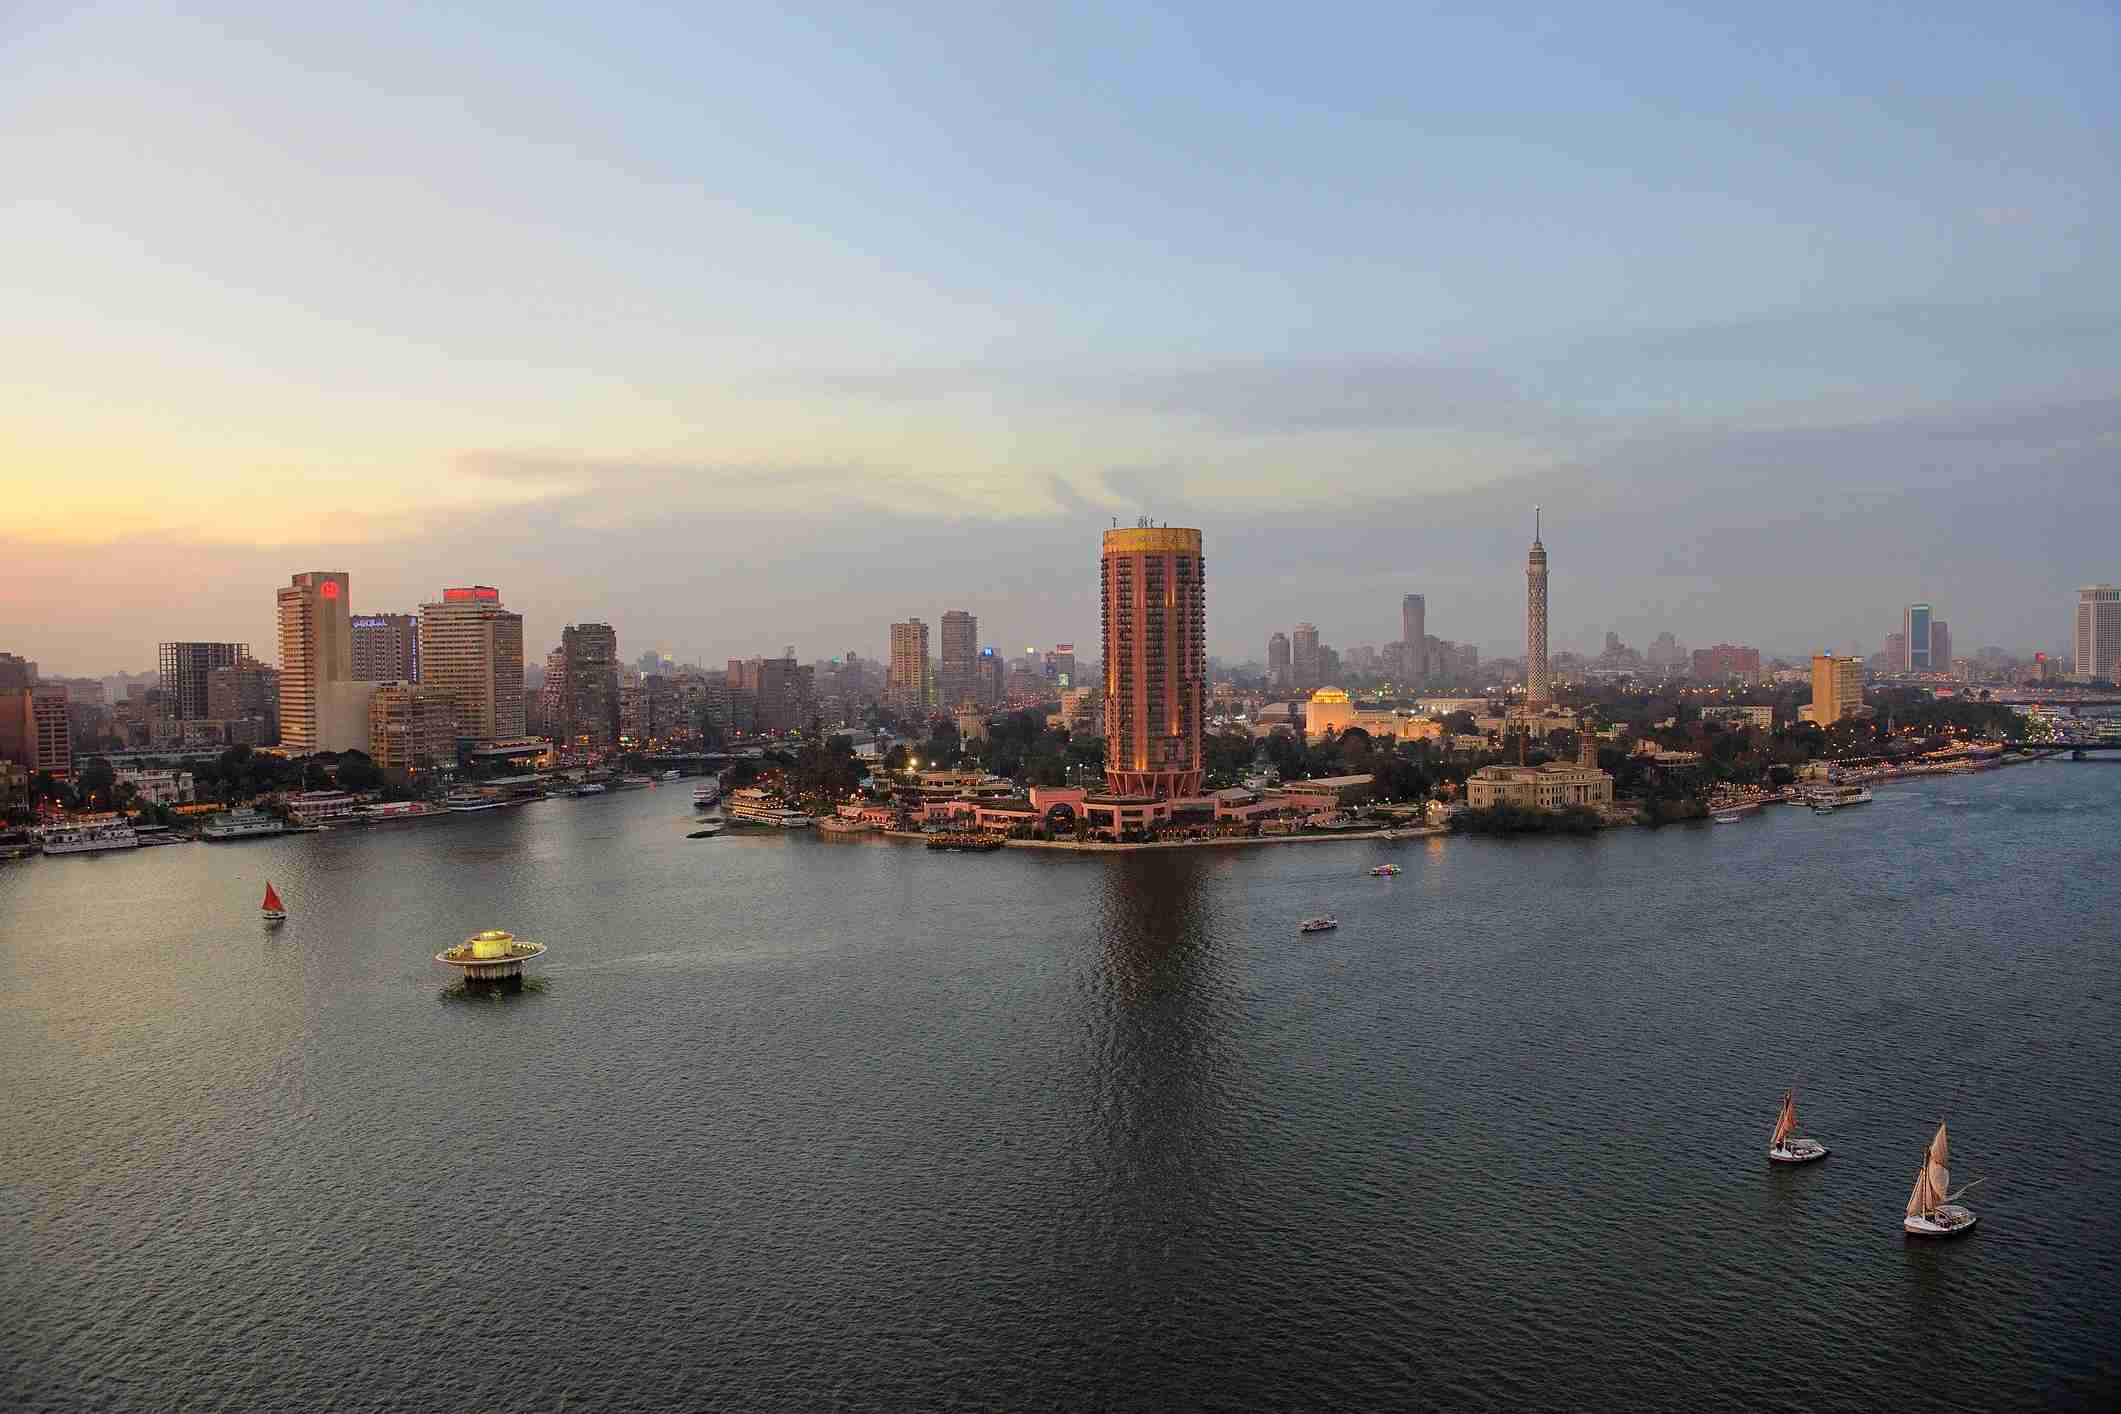 The Nile River in Cairo, Egypt. (Photo via Getty Images)